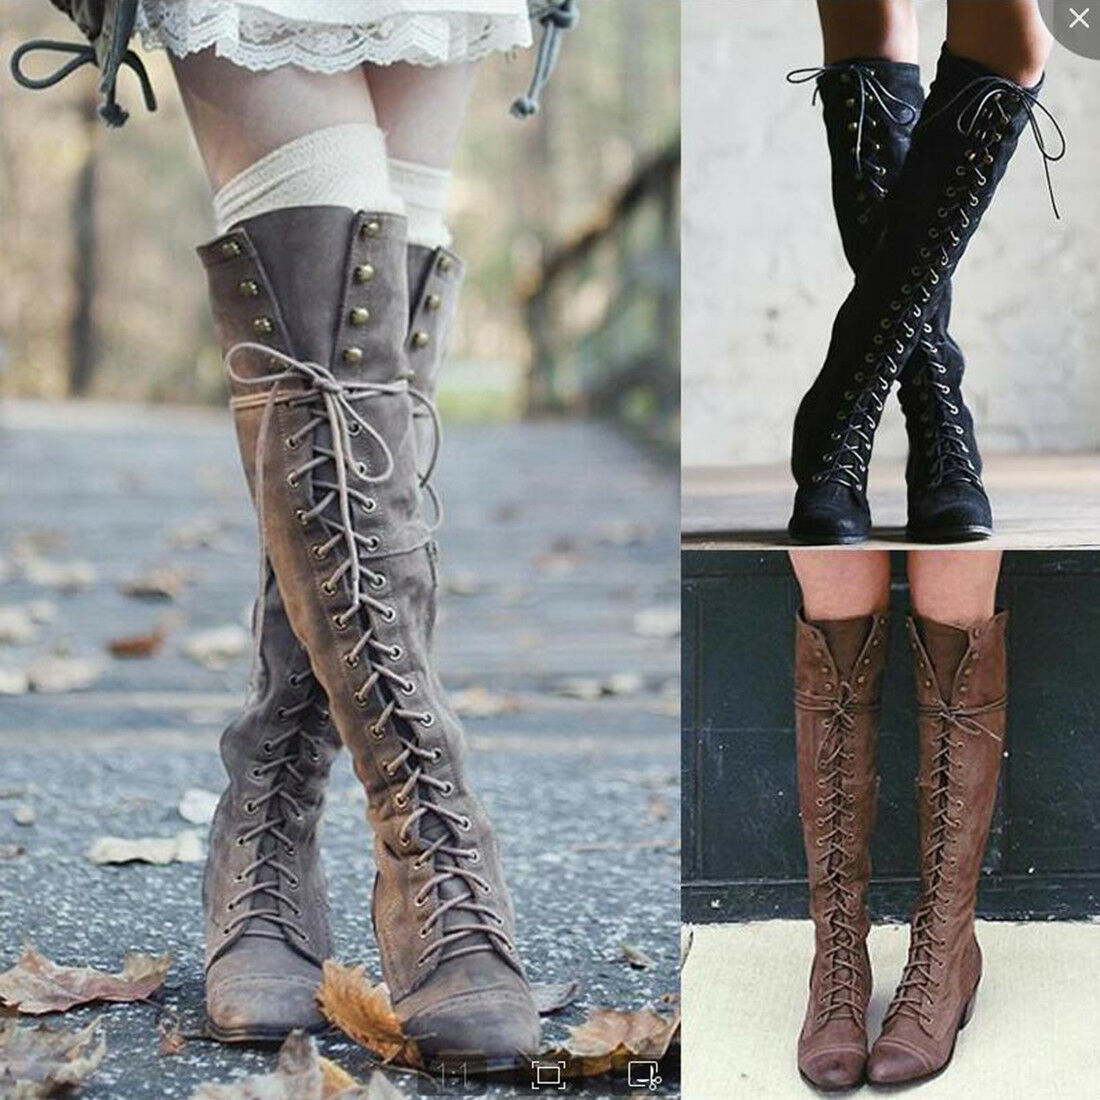 Women Lace up Knee High Rivet Long Boots Motorcycle Combat Riding shoes Size Hot